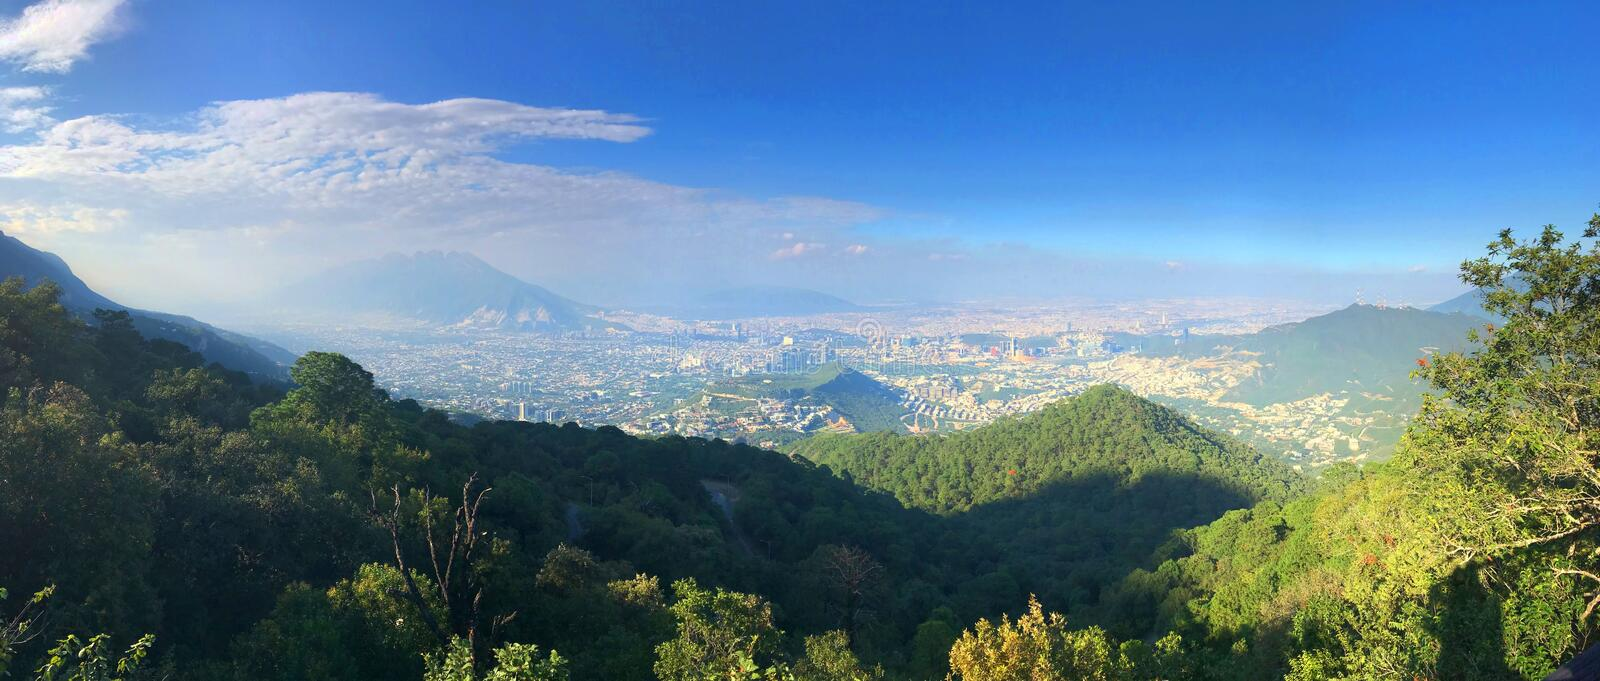 Monterrey Mexico from Parque Ecológico Chipinque. Overlooking Monterrey Mexico from Parque Ecológico Chipinque. Monterrey is a city of over 4 million royalty free stock photography